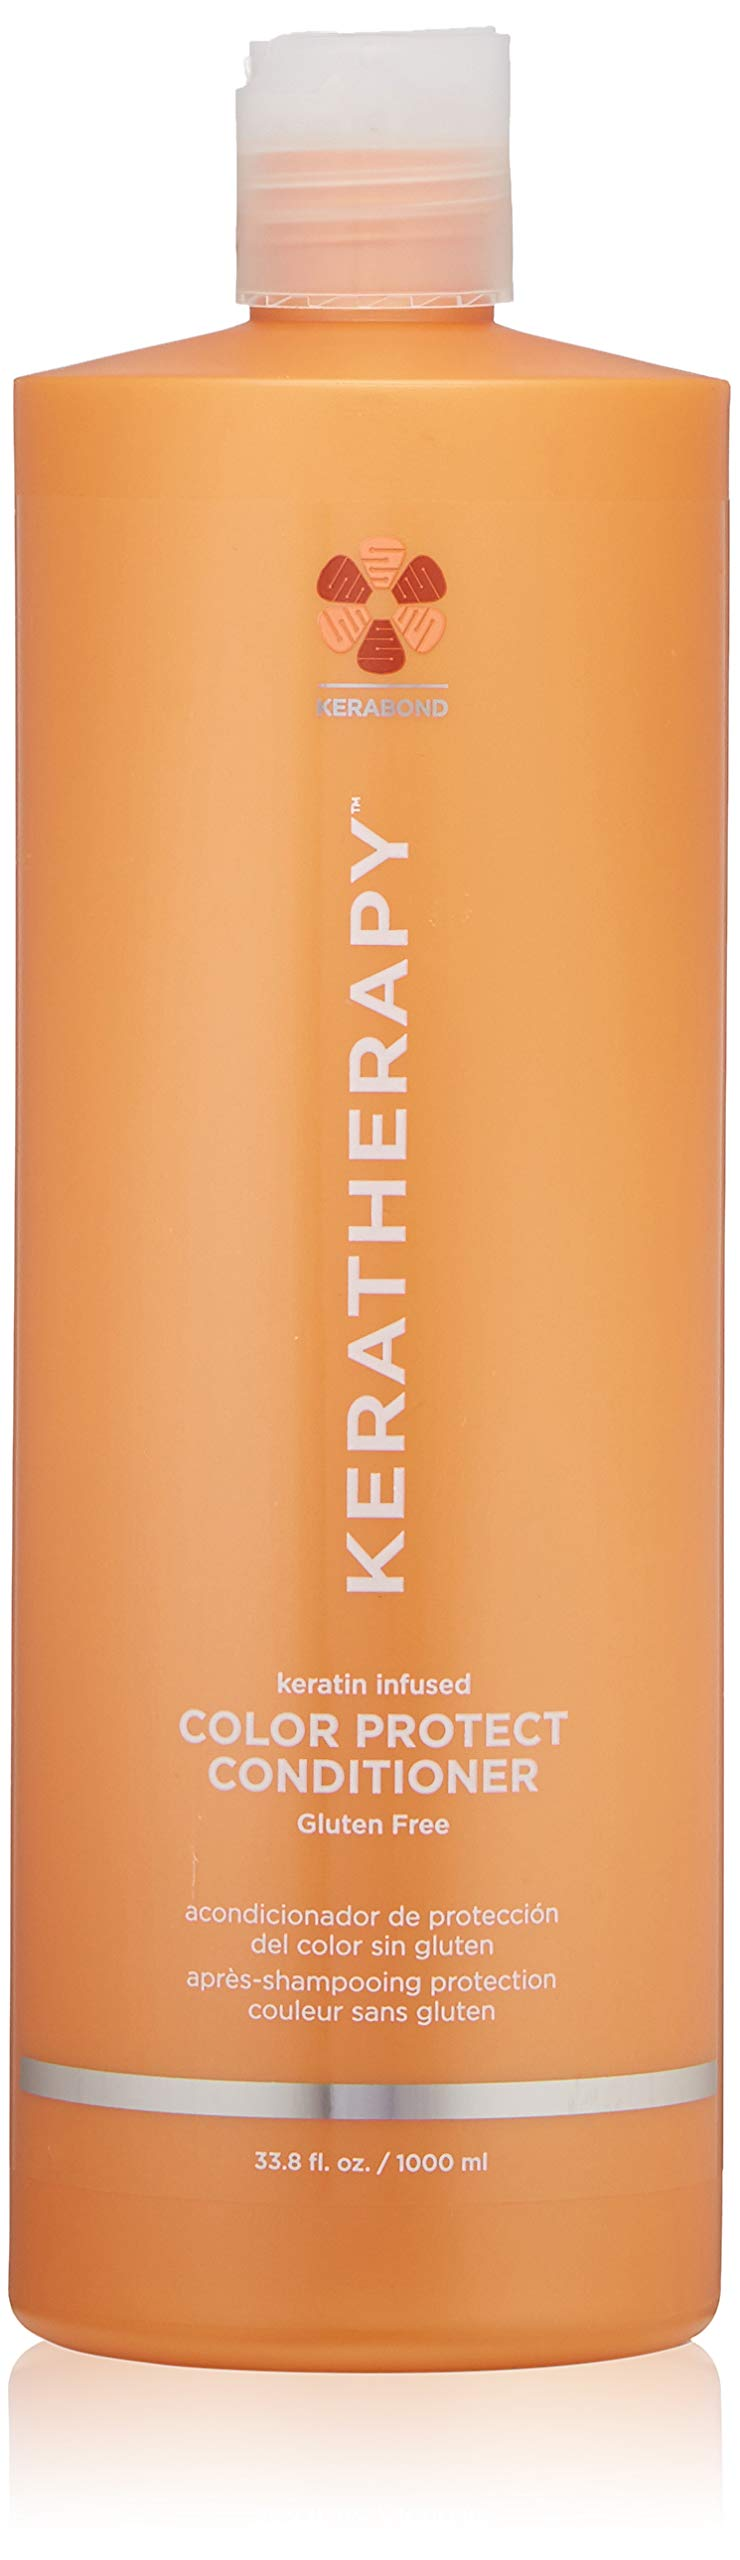 KERATHERAPY Keratin Infused Color Protect Conditioner, 33.8 Fl Oz